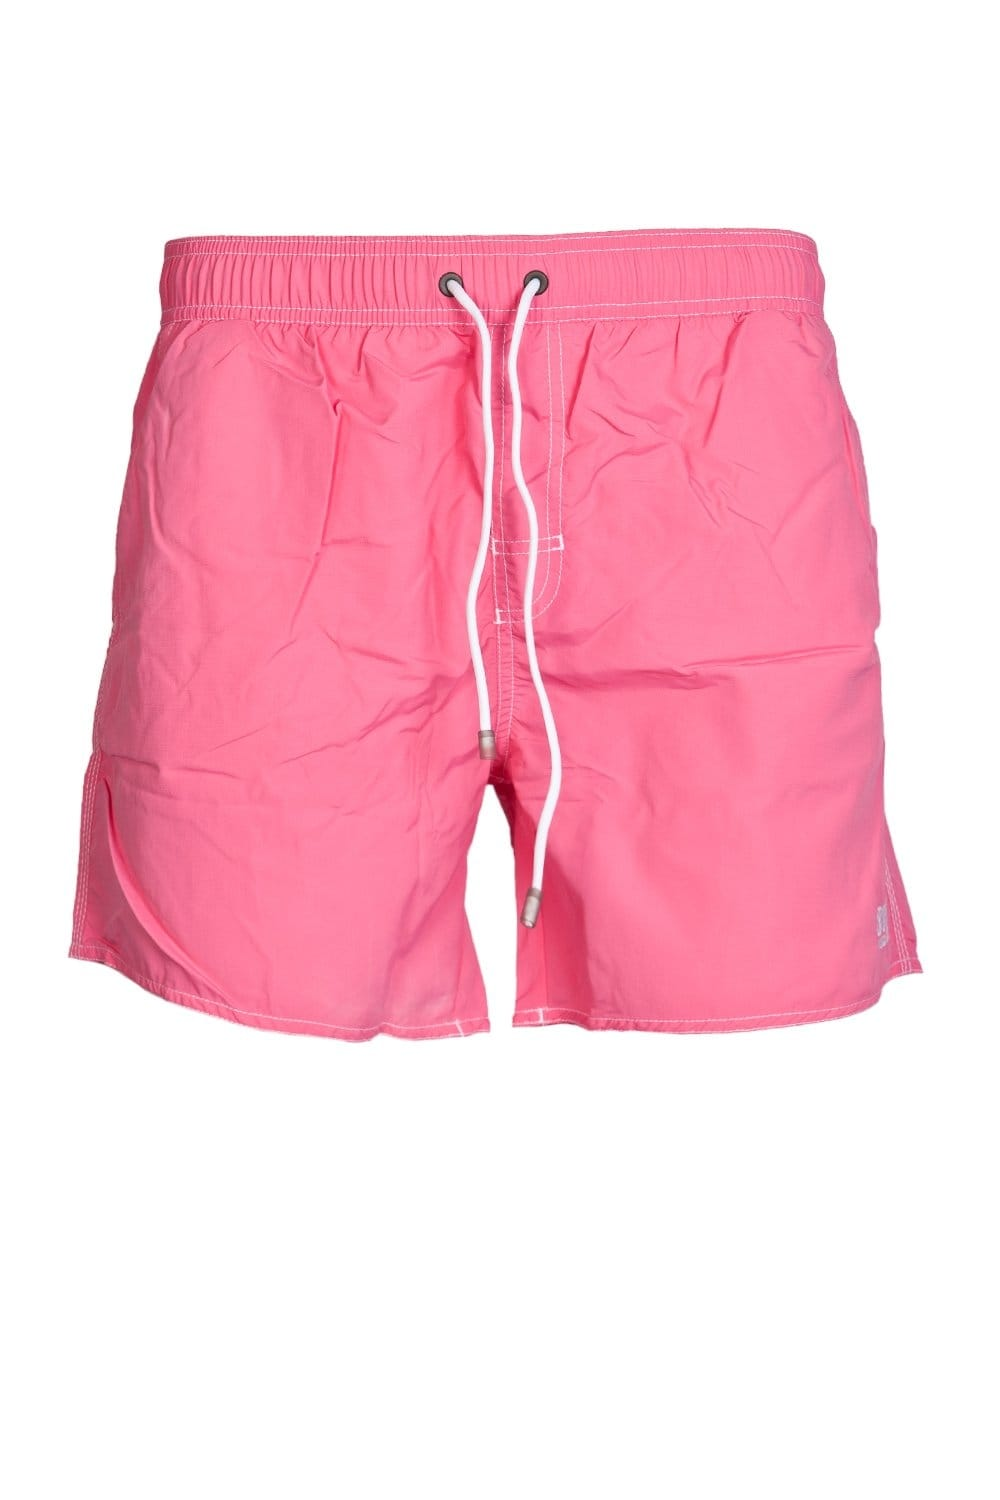 83b1402bd3753 HUGO BOSS BLACK Quick-dry Swimming Shorts in Yellow Orange and range of  colours LOBSTER